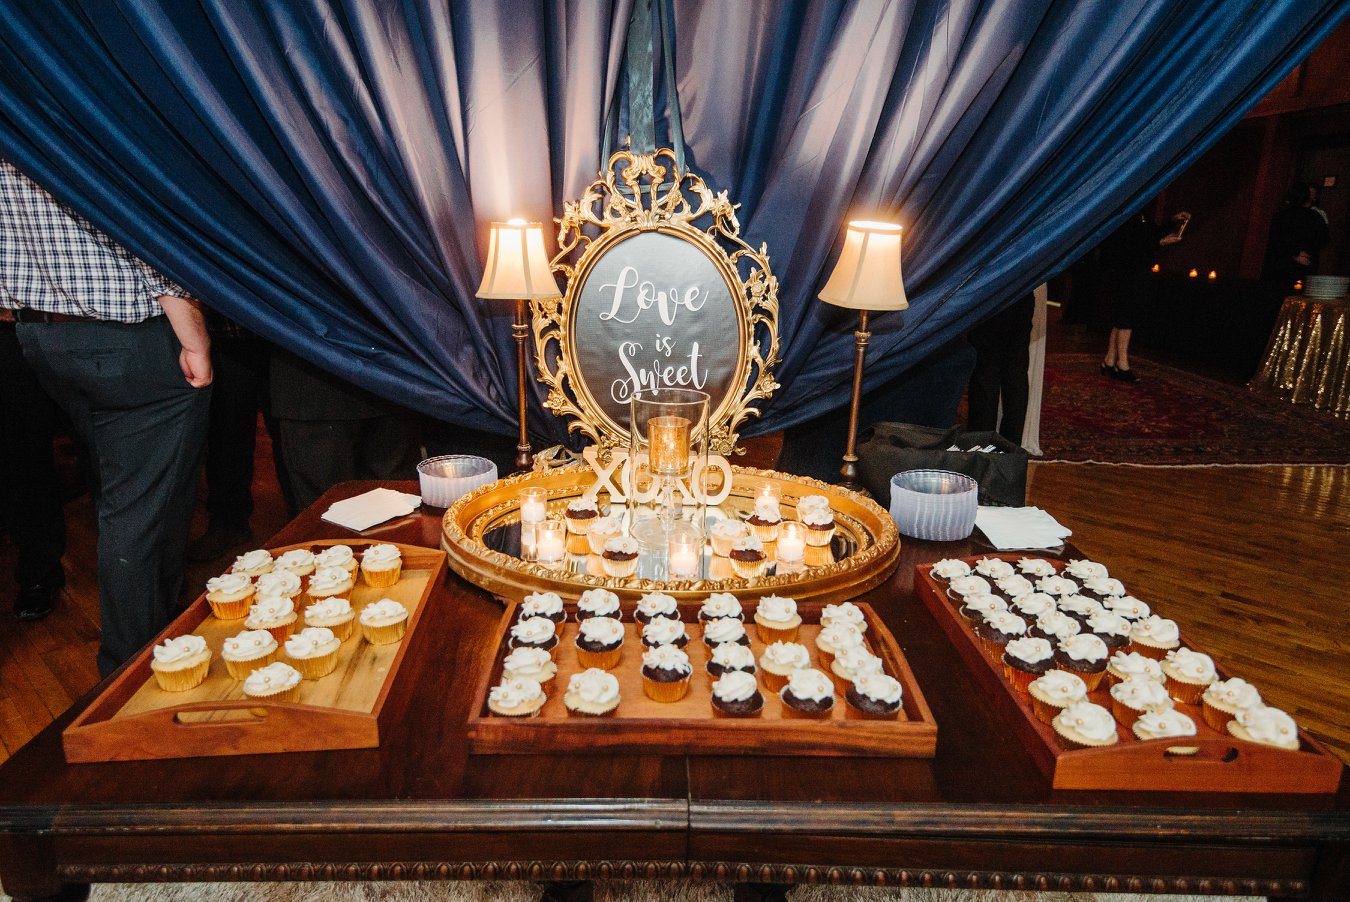 Elegant dessert displays